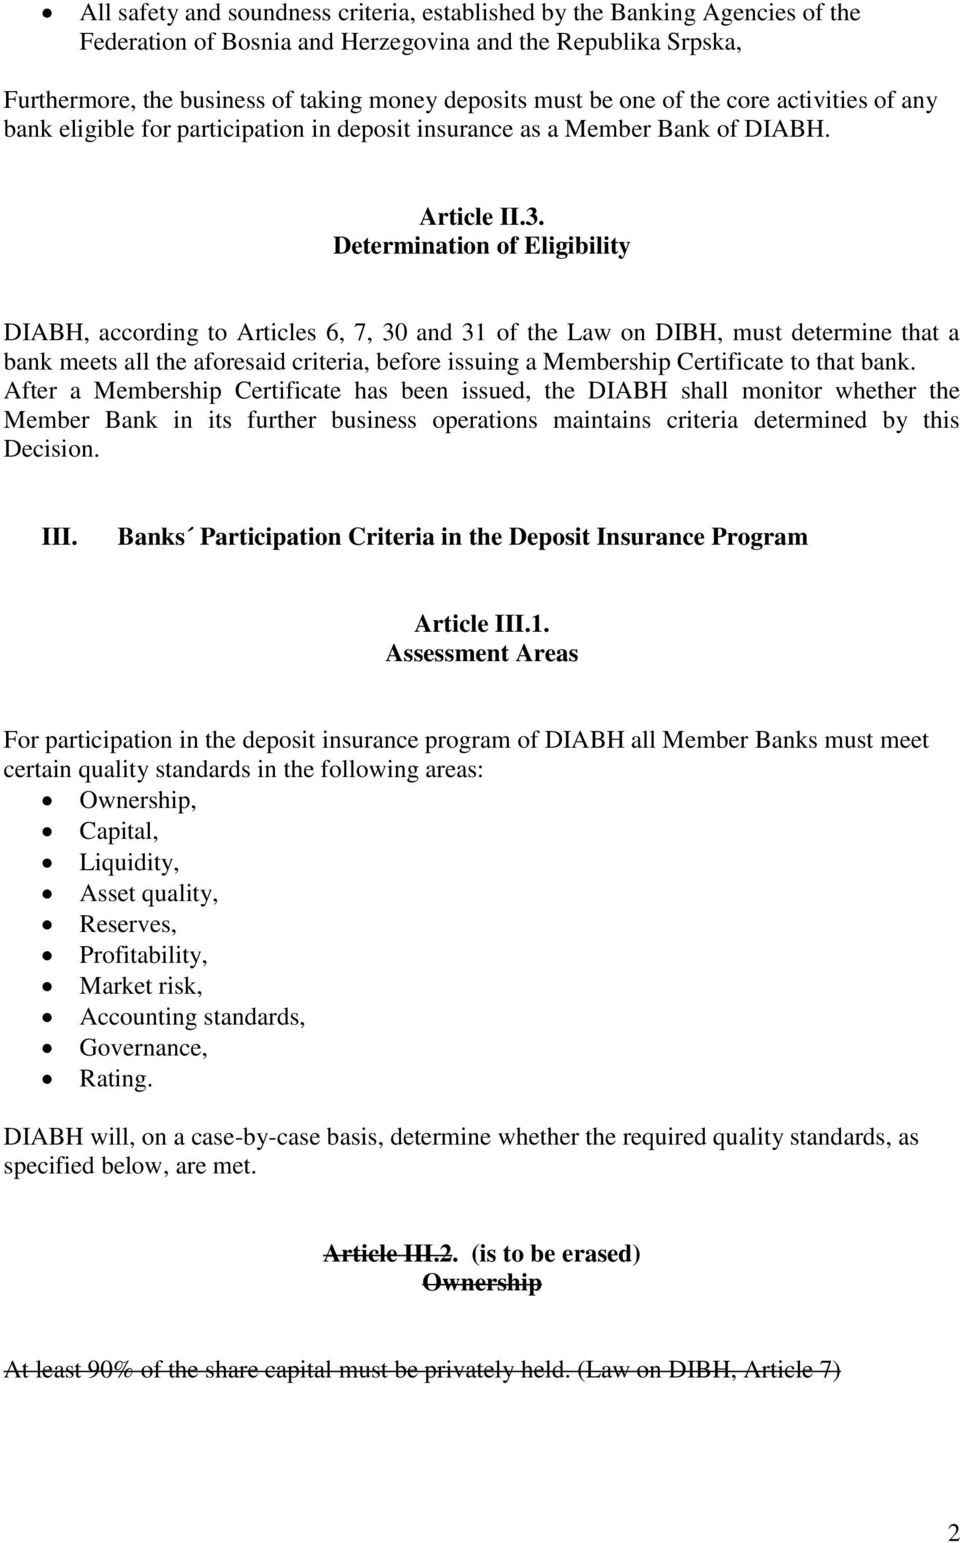 Determination of Eligibility DIABH, according to Articles 6, 7, 30 and 31 of the Law on DIBH, must determine that a bank meets all the aforesaid criteria, before issuing a Membership Certificate to